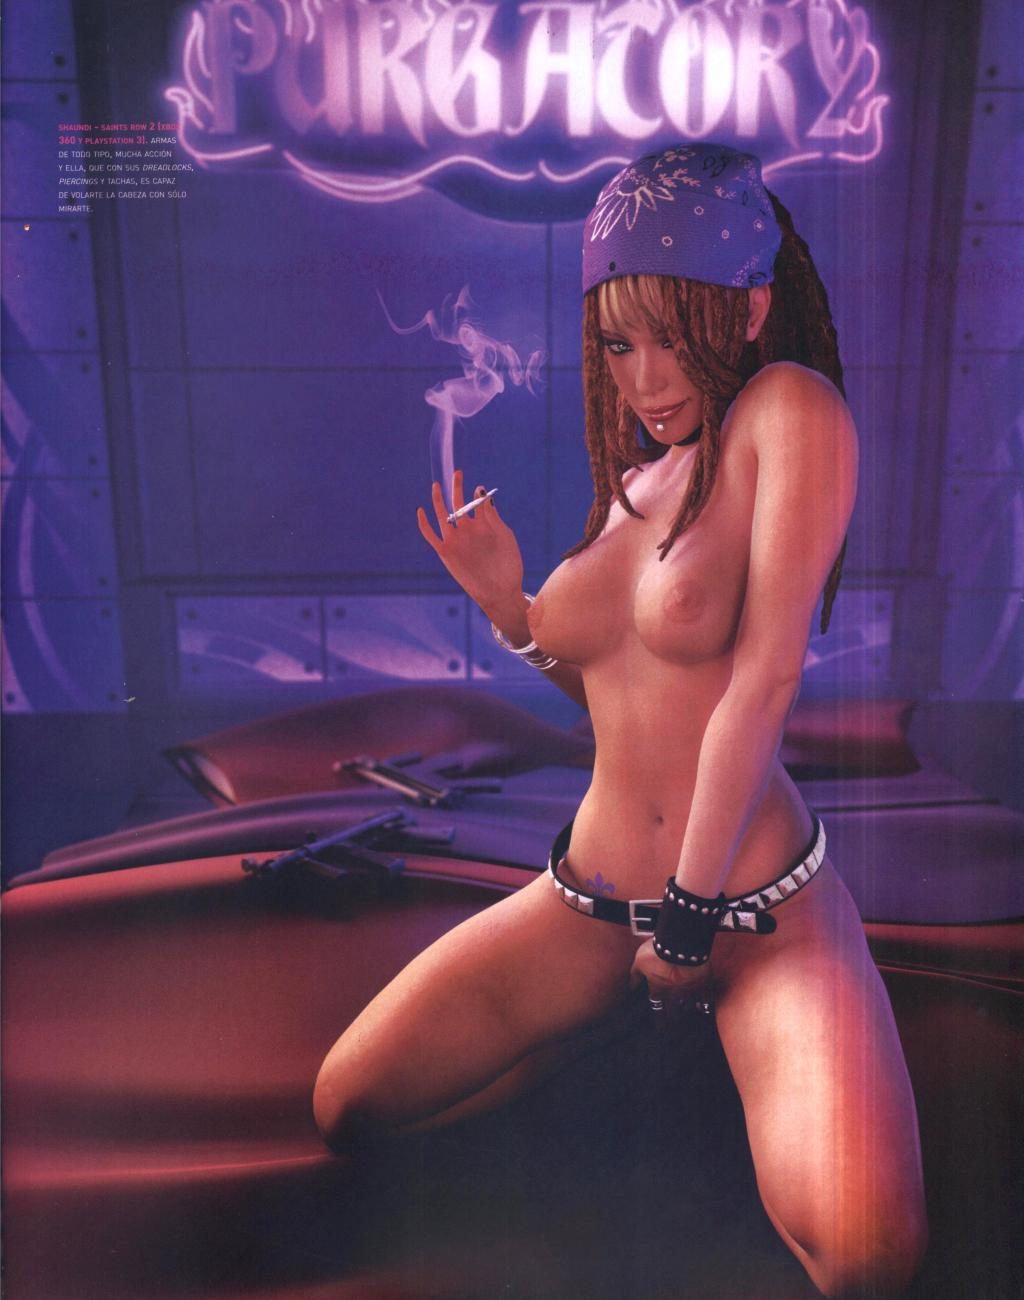 Saints row: xxx adult gallery